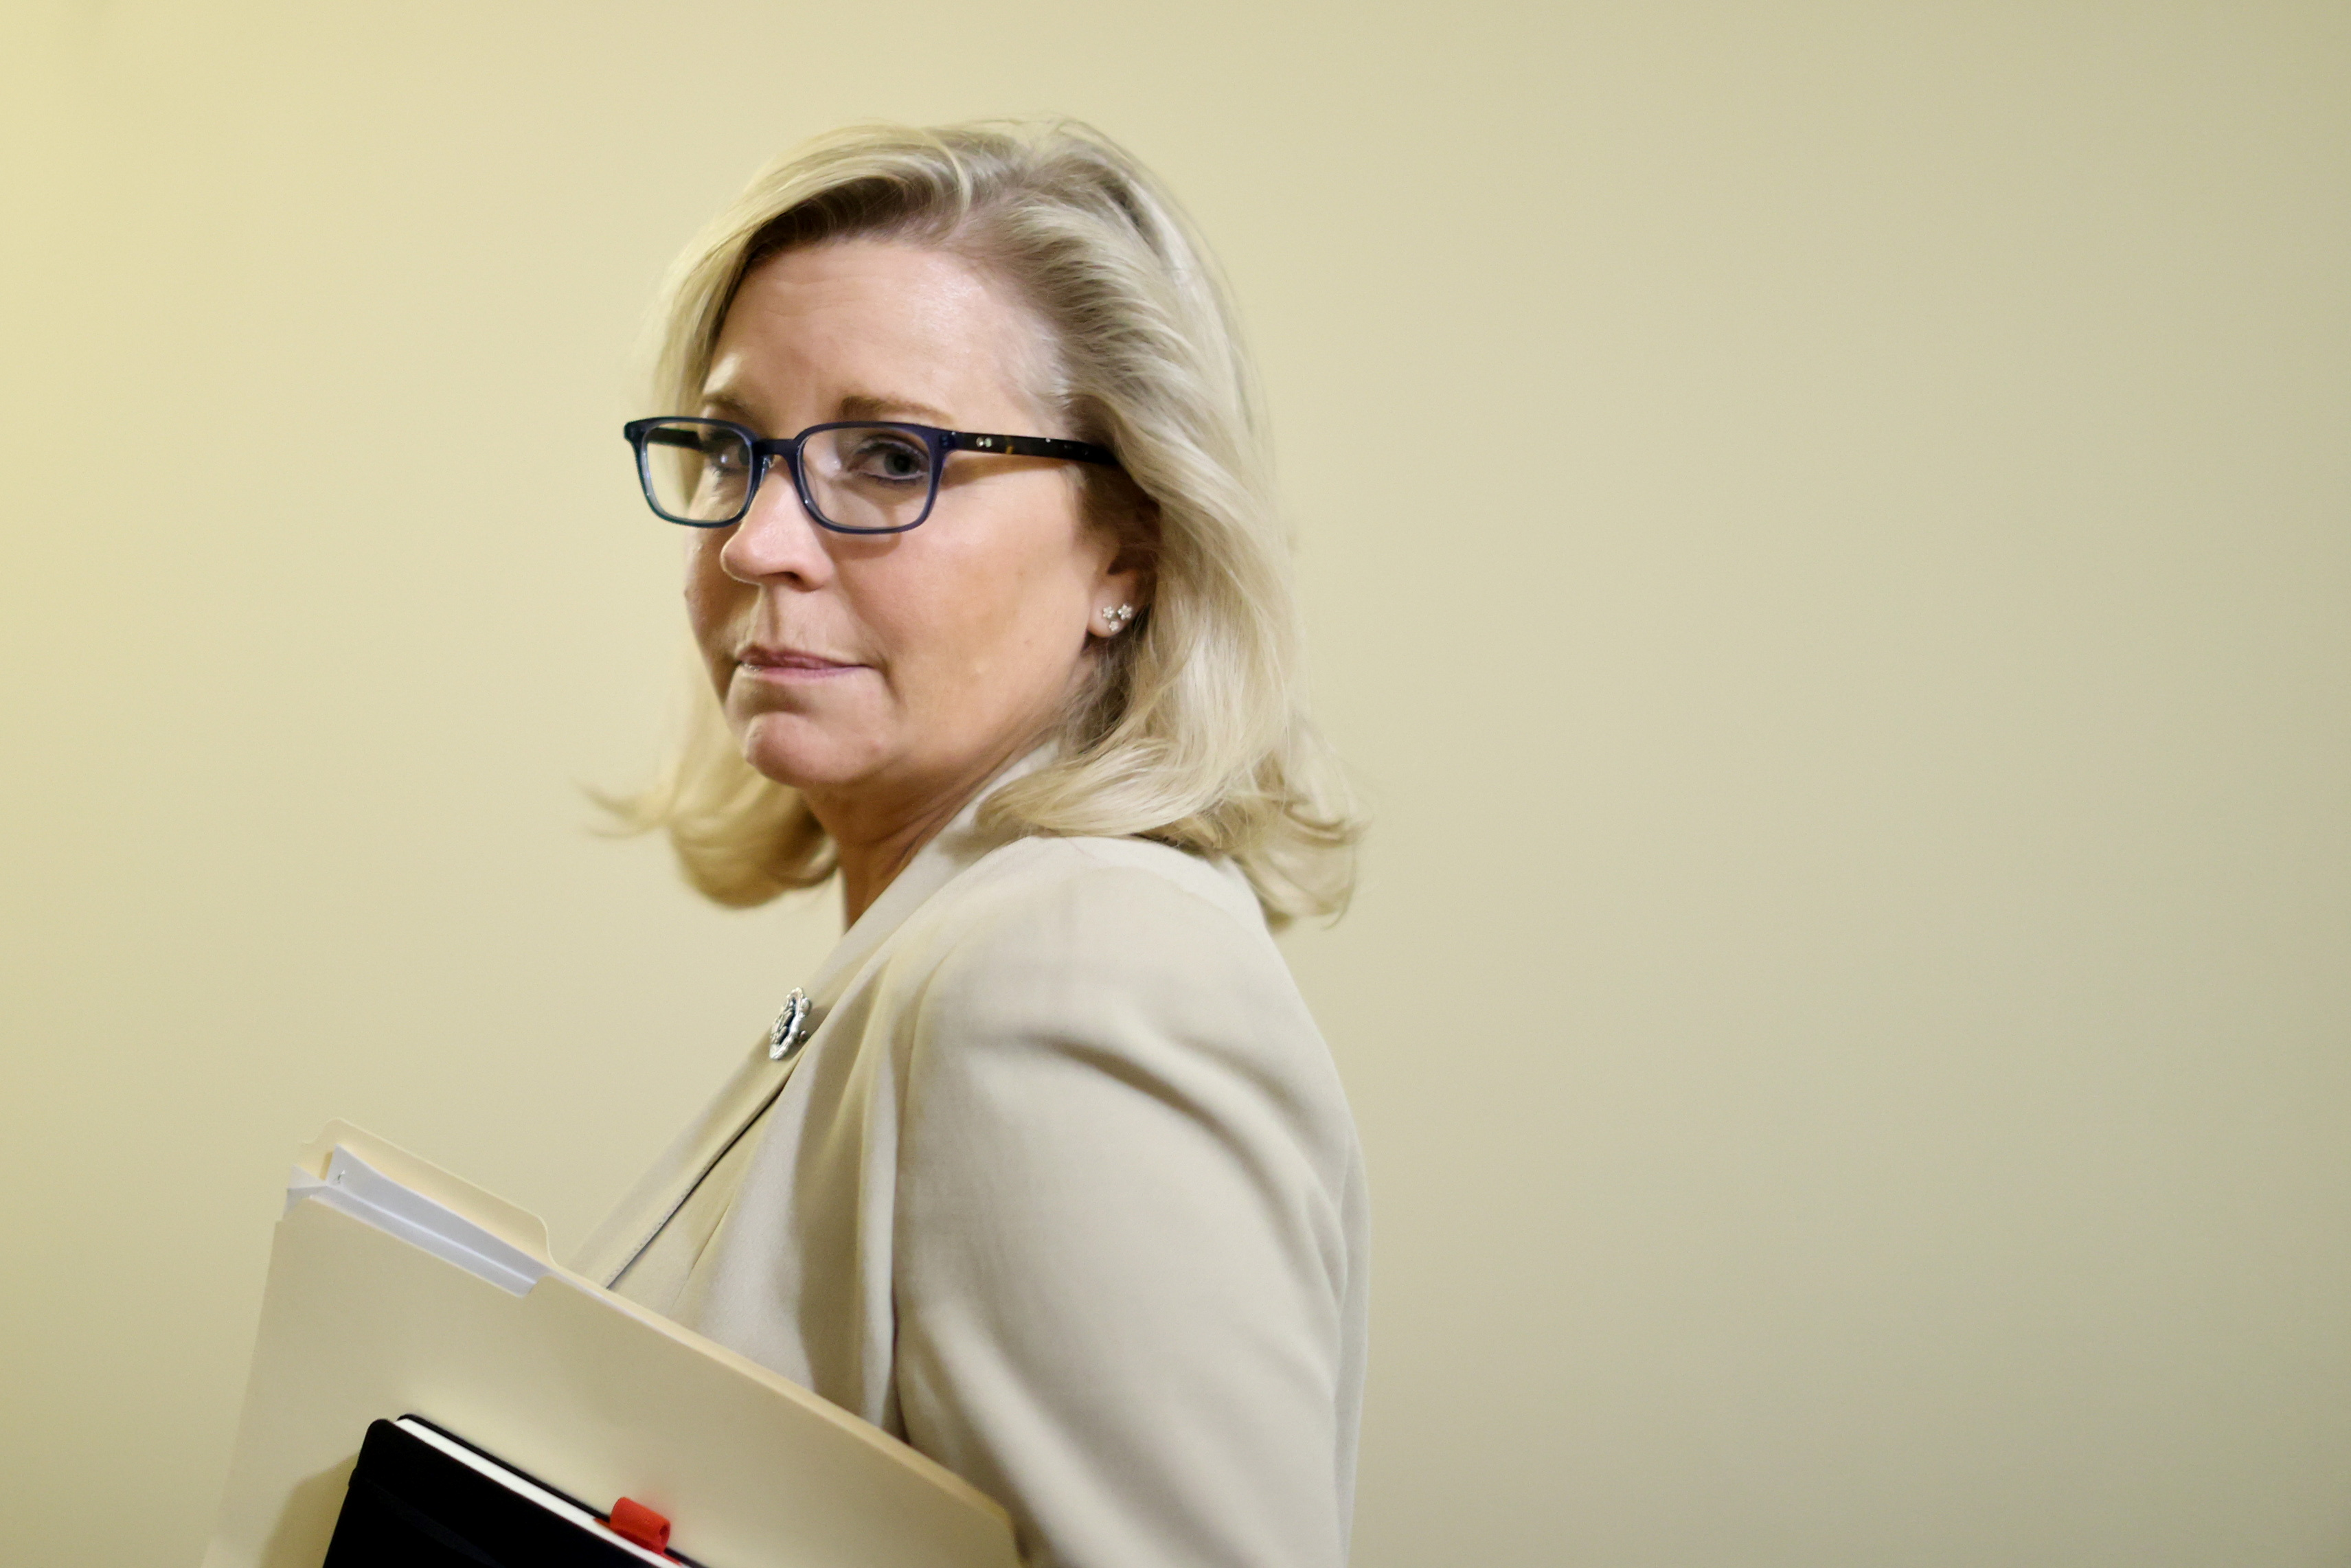 U.S. Representative Liz Cheney (R-WY) listens to a reporter's question as she departs after meeting with fellow Select Committee to Investigate the January 6th Attack on the U.S. Capitol members and House Speaker Nancy Pelosi (D-CA) at the Capitol in Washington, U.S. July 1, 2021.  REUTERS/Jonathan Ernst